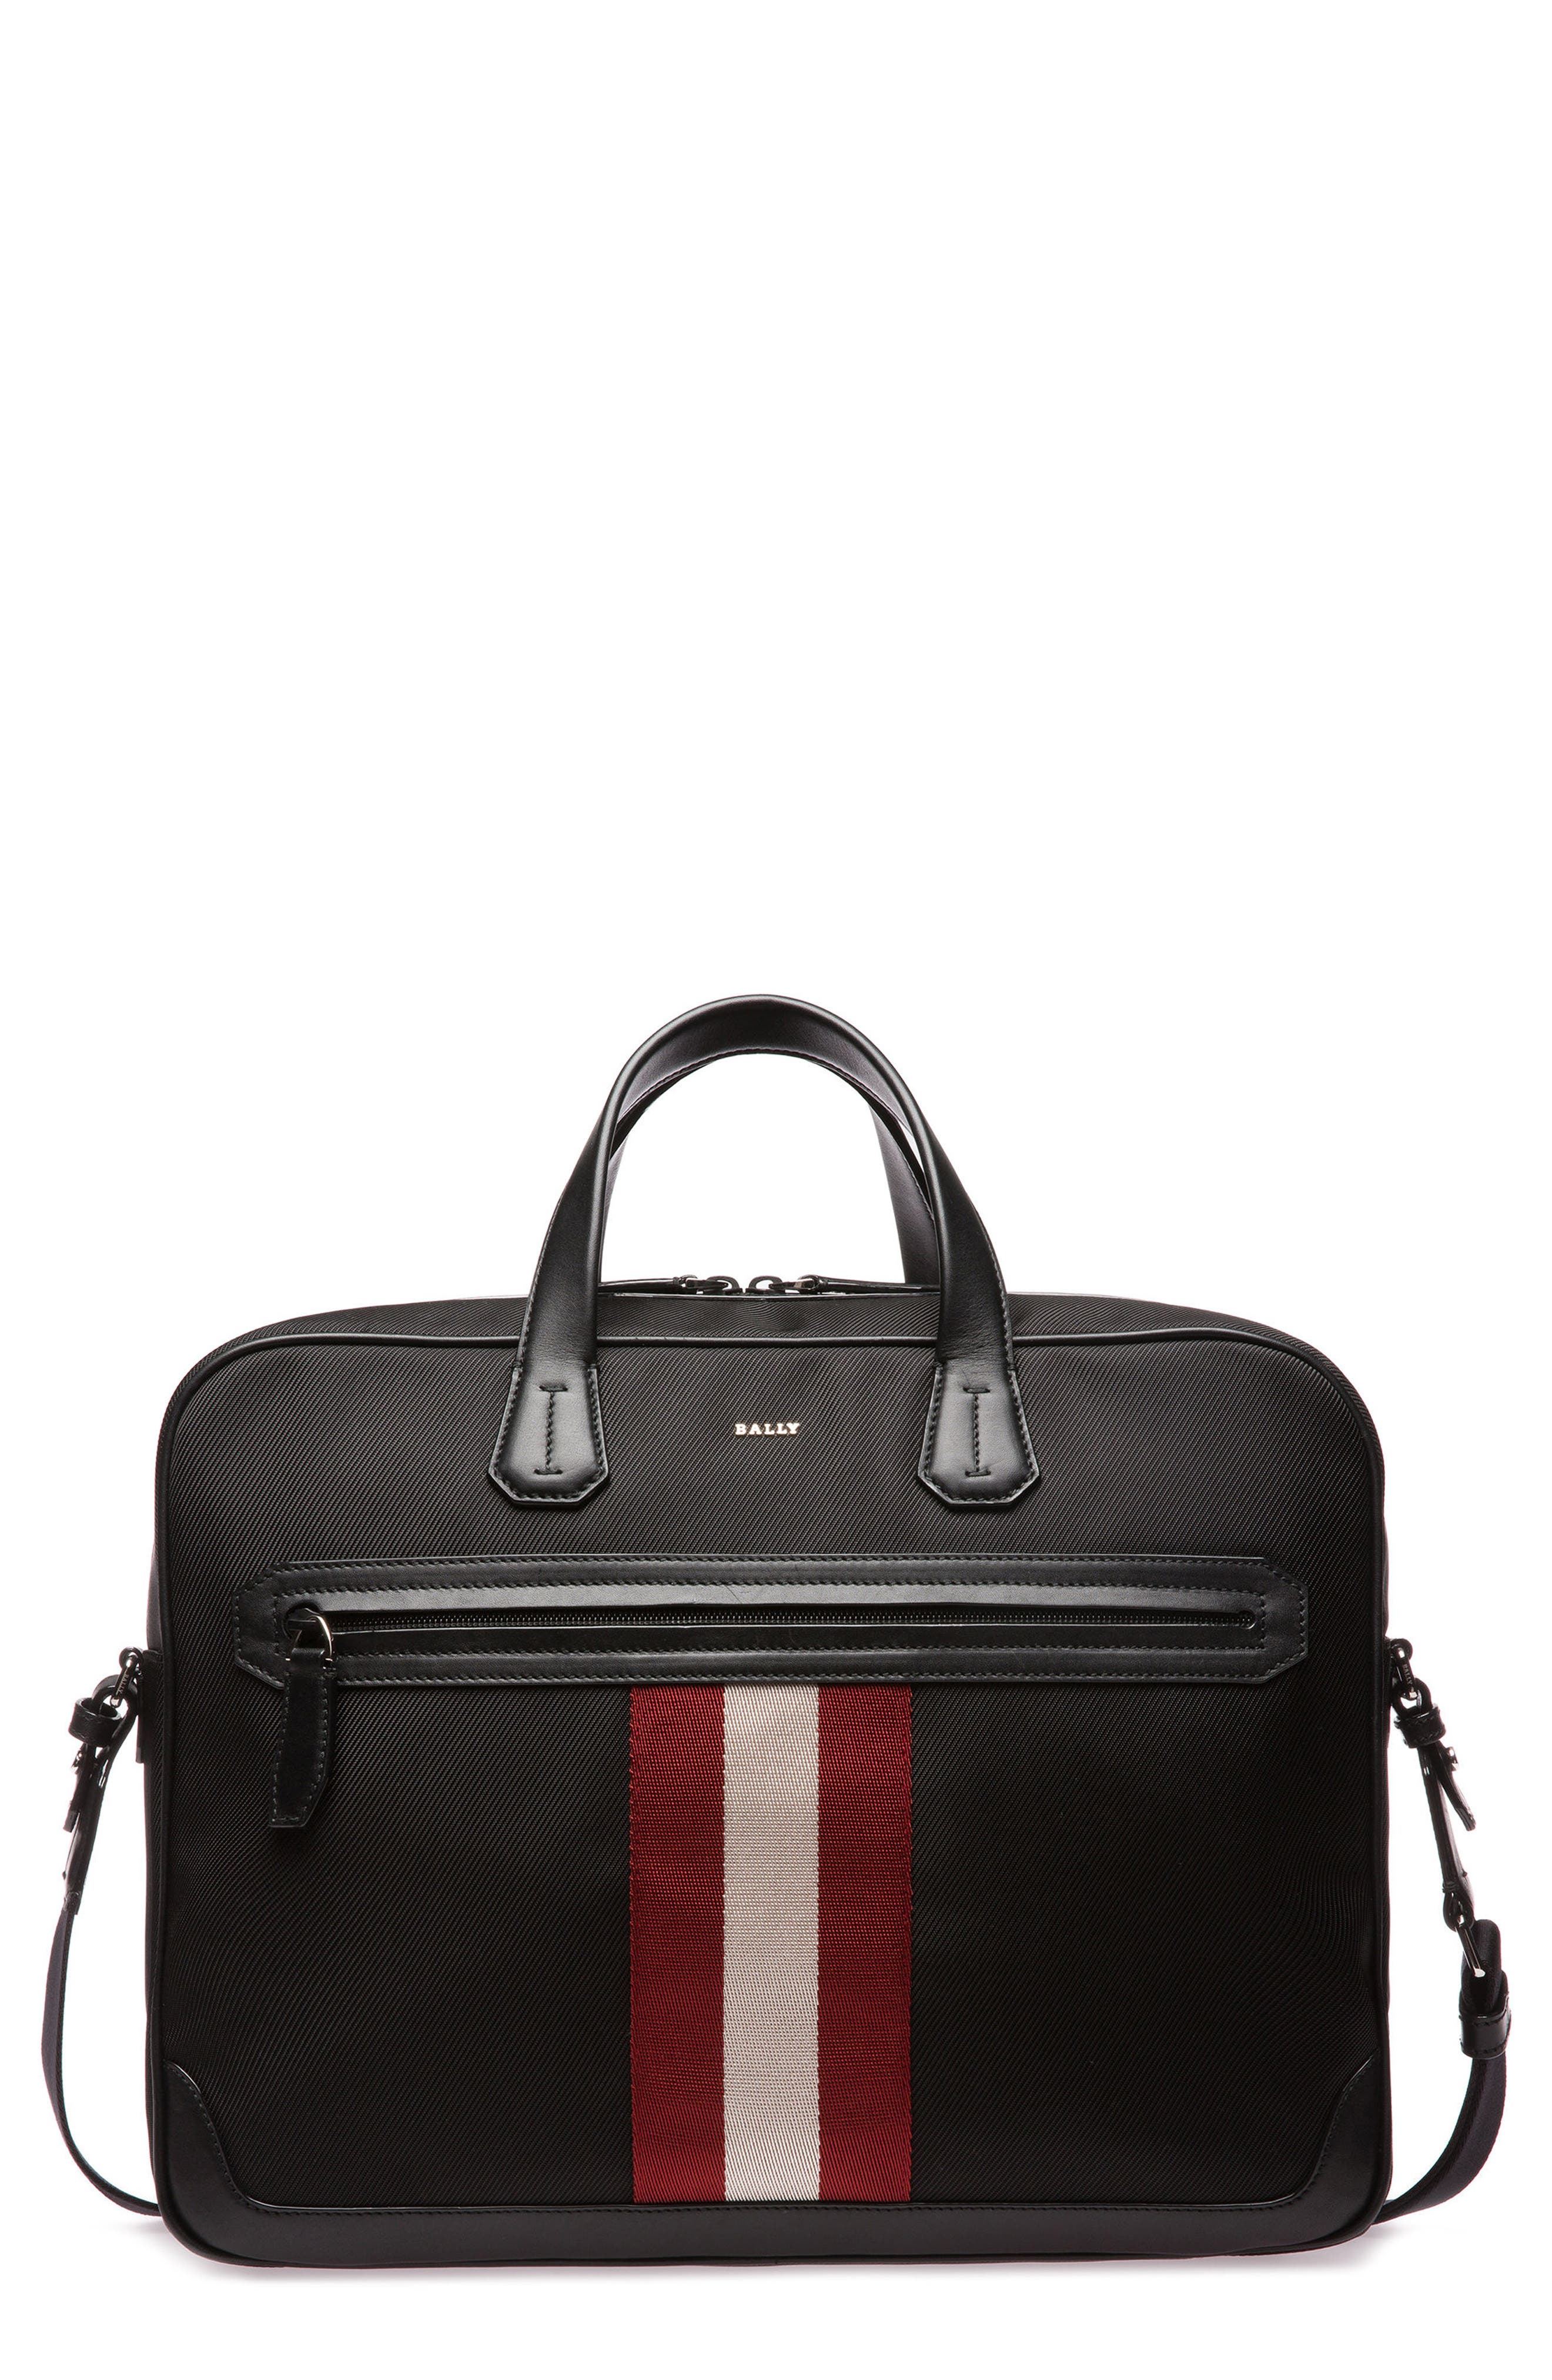 630720819f Bally Laptop Bags   Briefcases  Leather